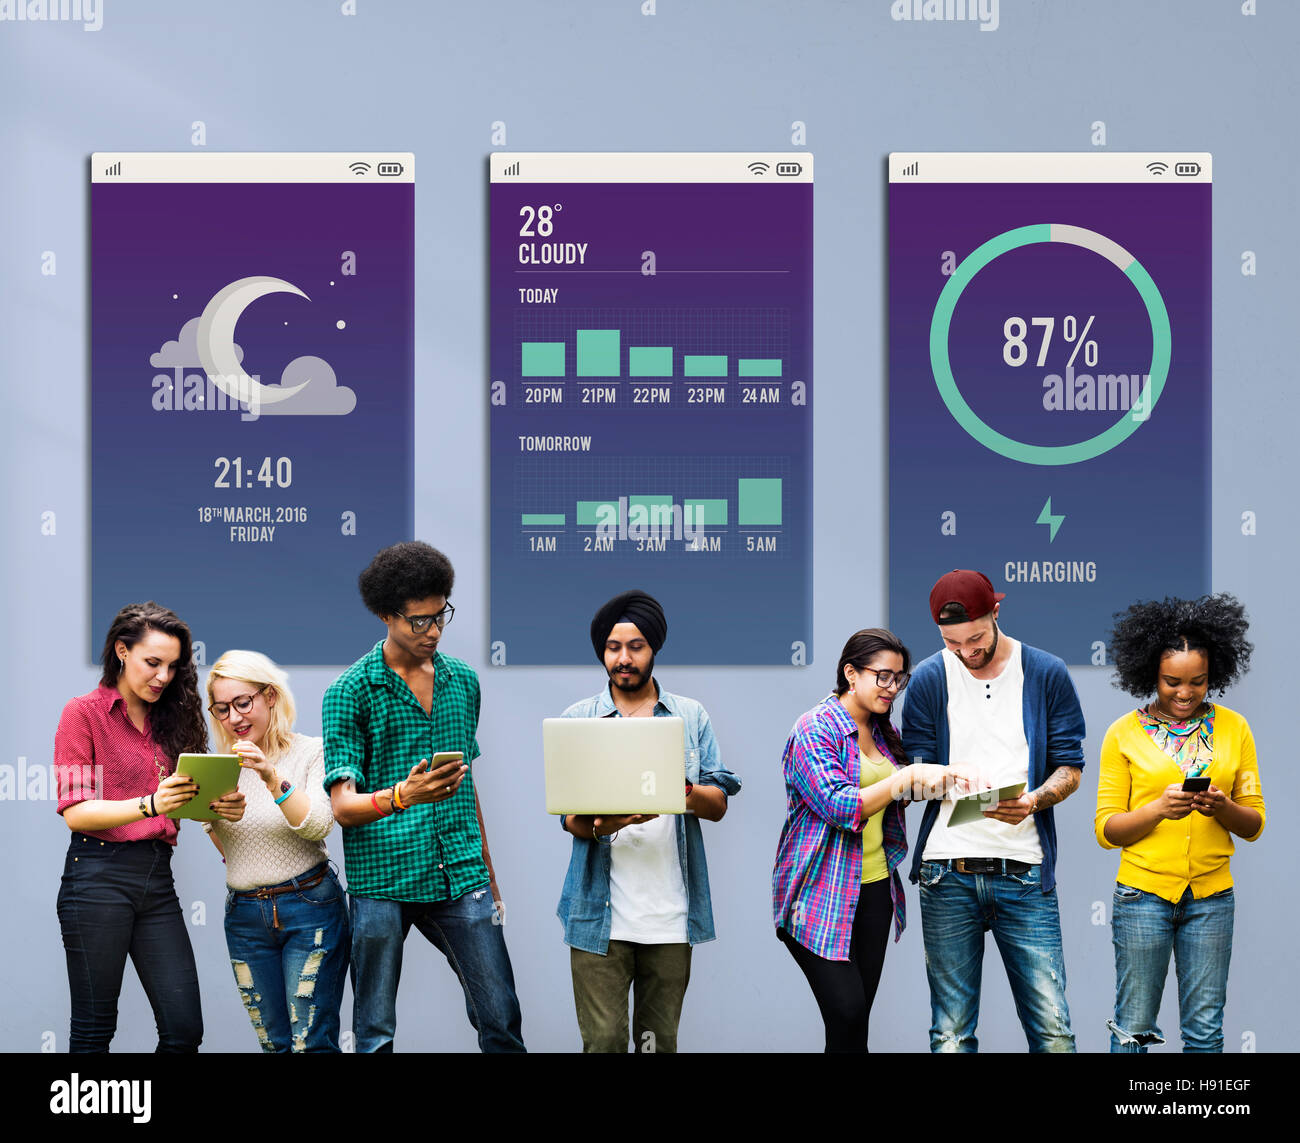 Weather Report Application Digital Display Concept - Stock Image